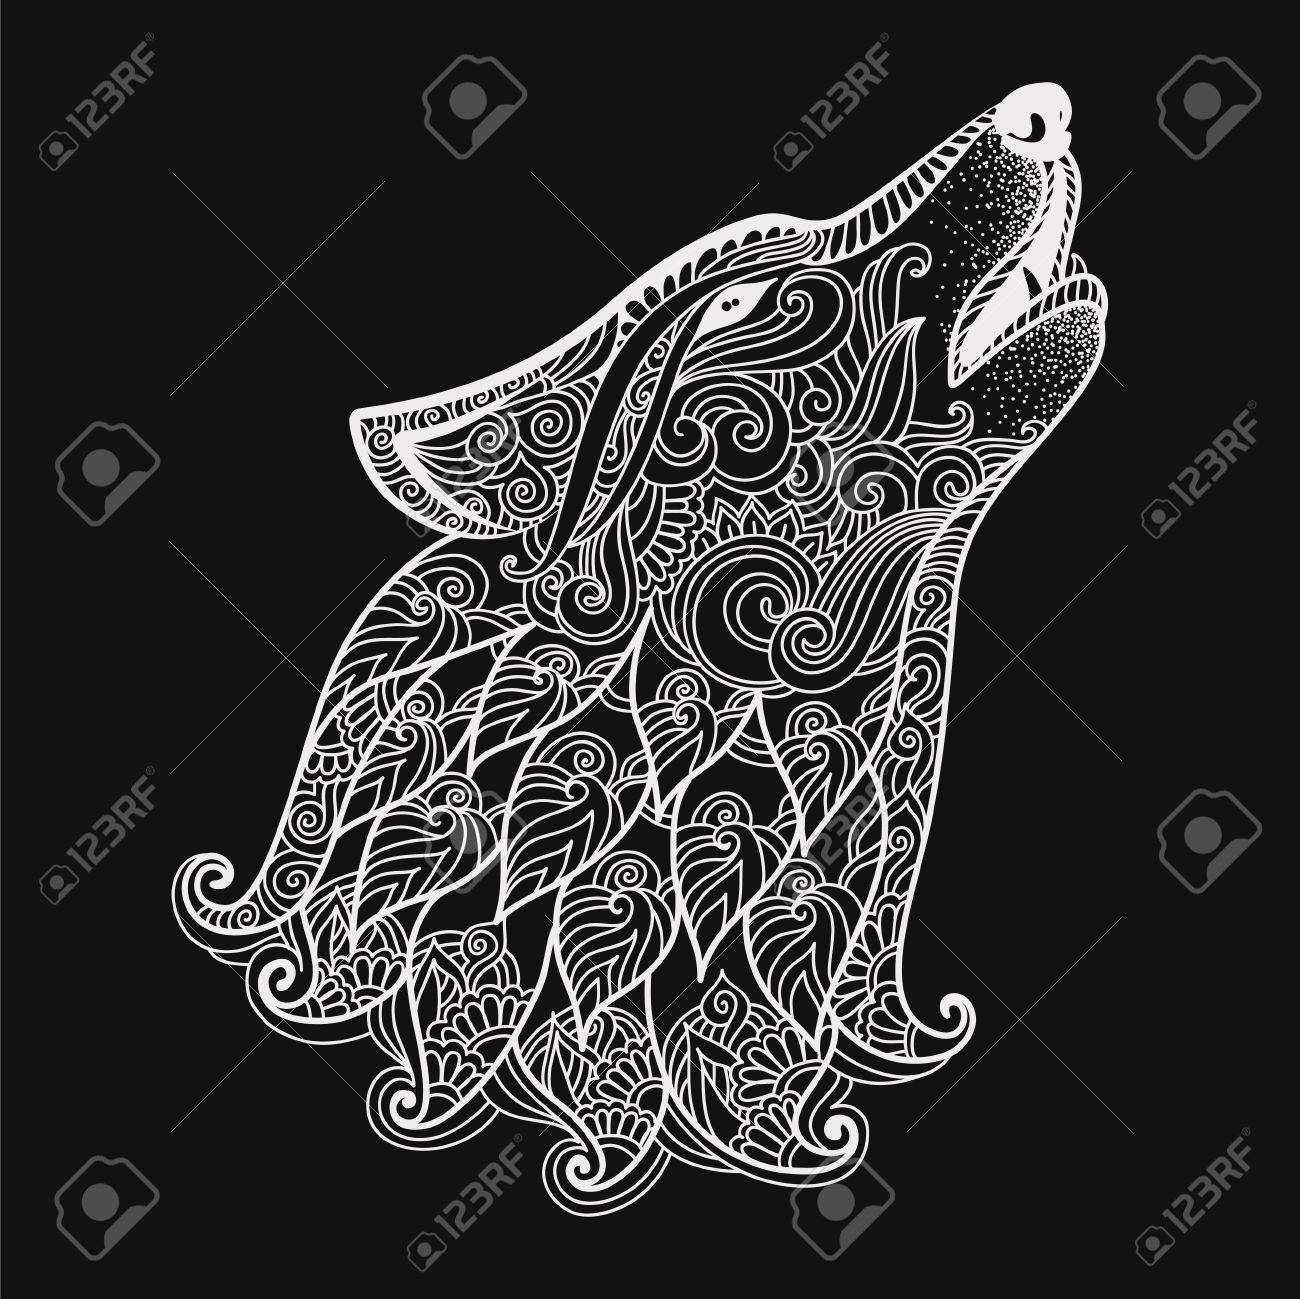 Hand drawn wolf side view with ethnic floral doodle pattern zentangle